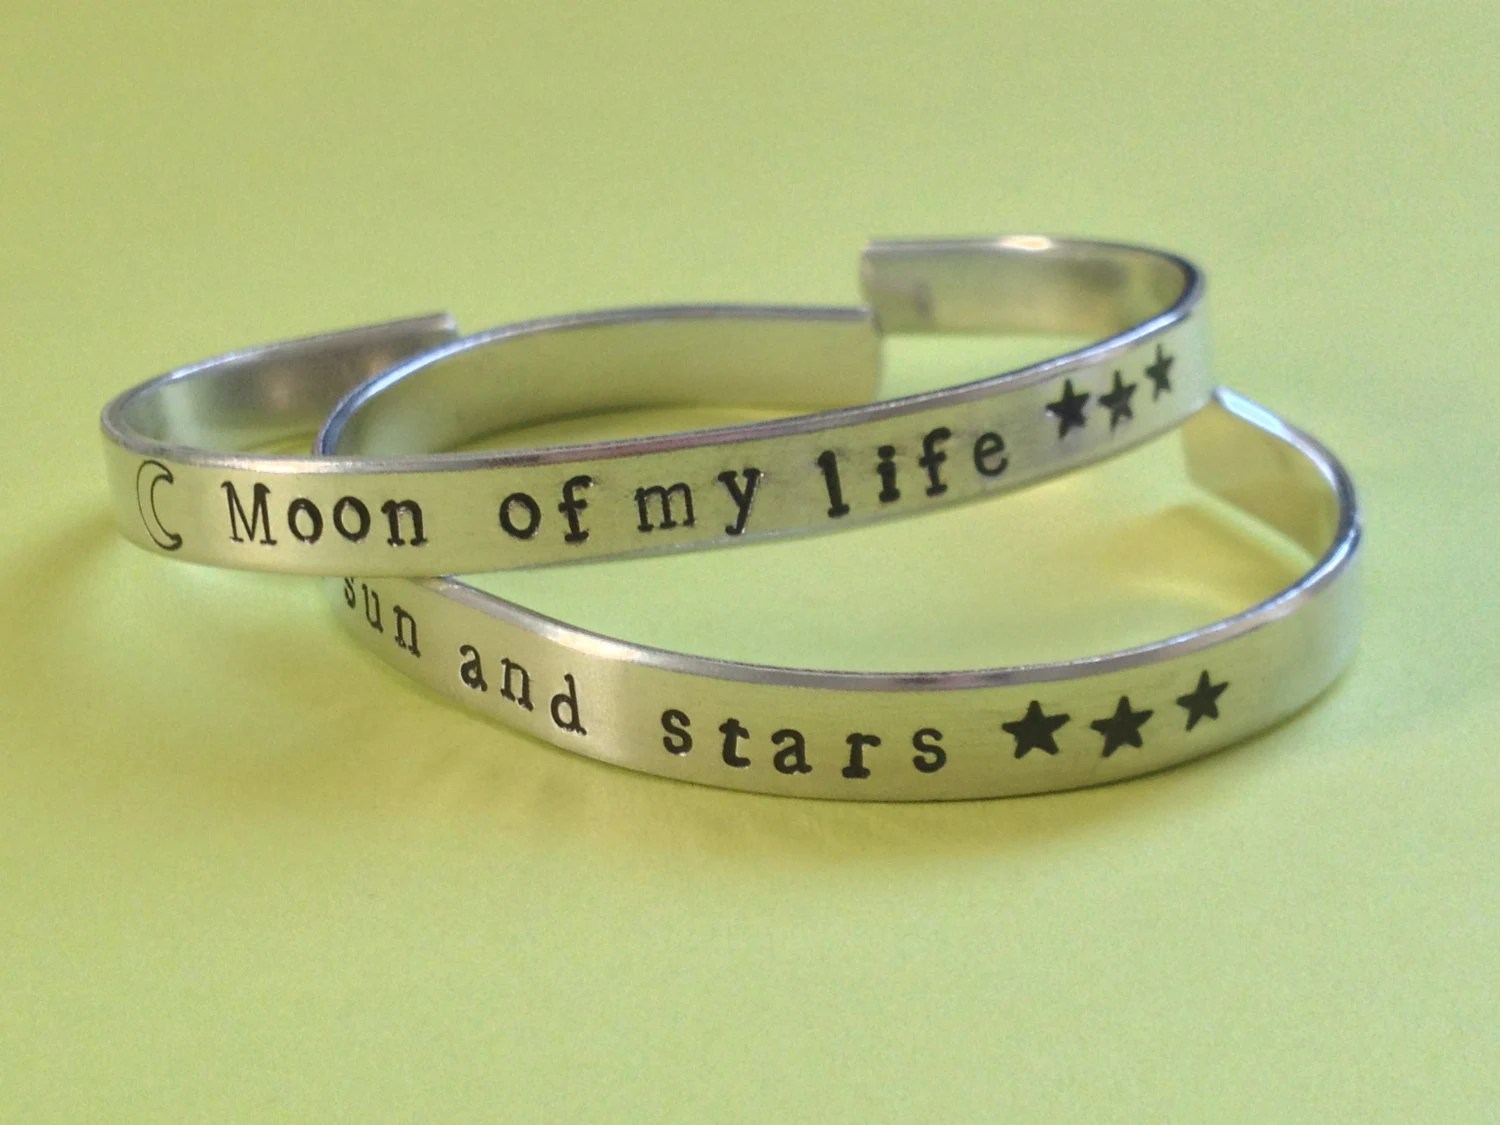 Moon of My Life, My Sun And Stars Game of Thrones  Inspired Set of Two  Bracelets - Hand Stamped Aluminum